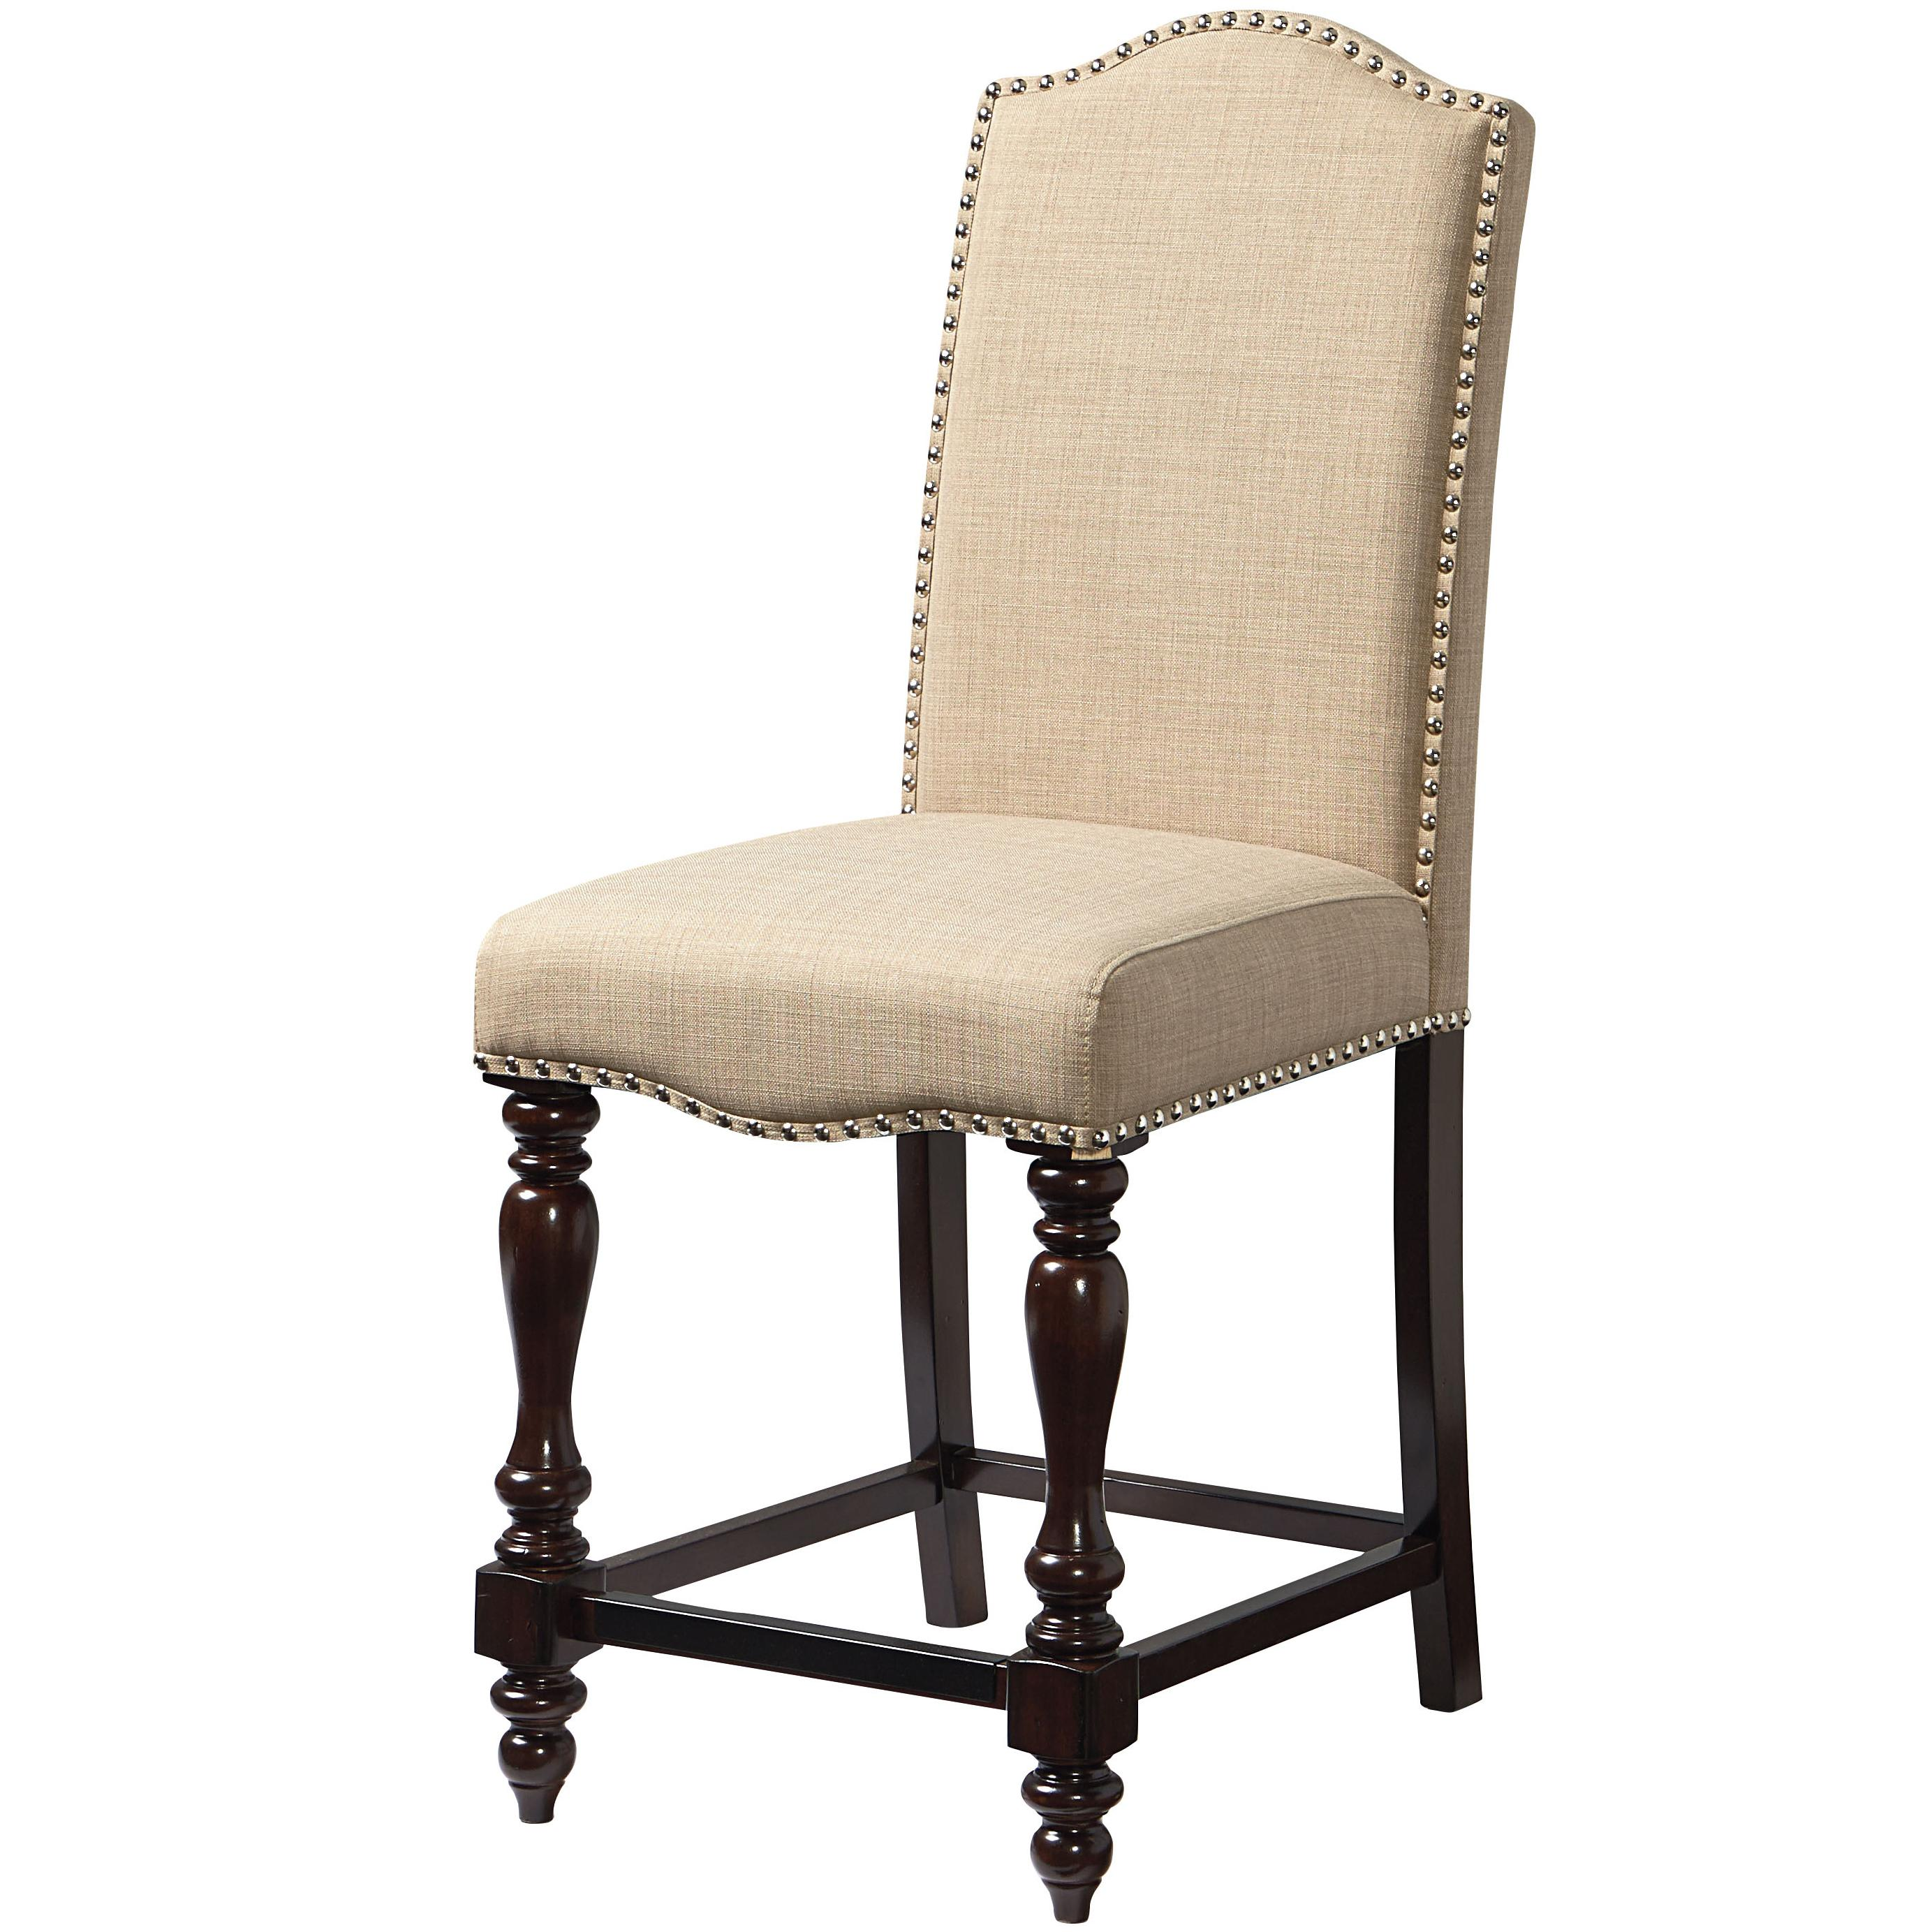 upholstered counter height chairs cheapest chair covers for sale standard furniture mcgregor 17737 stool